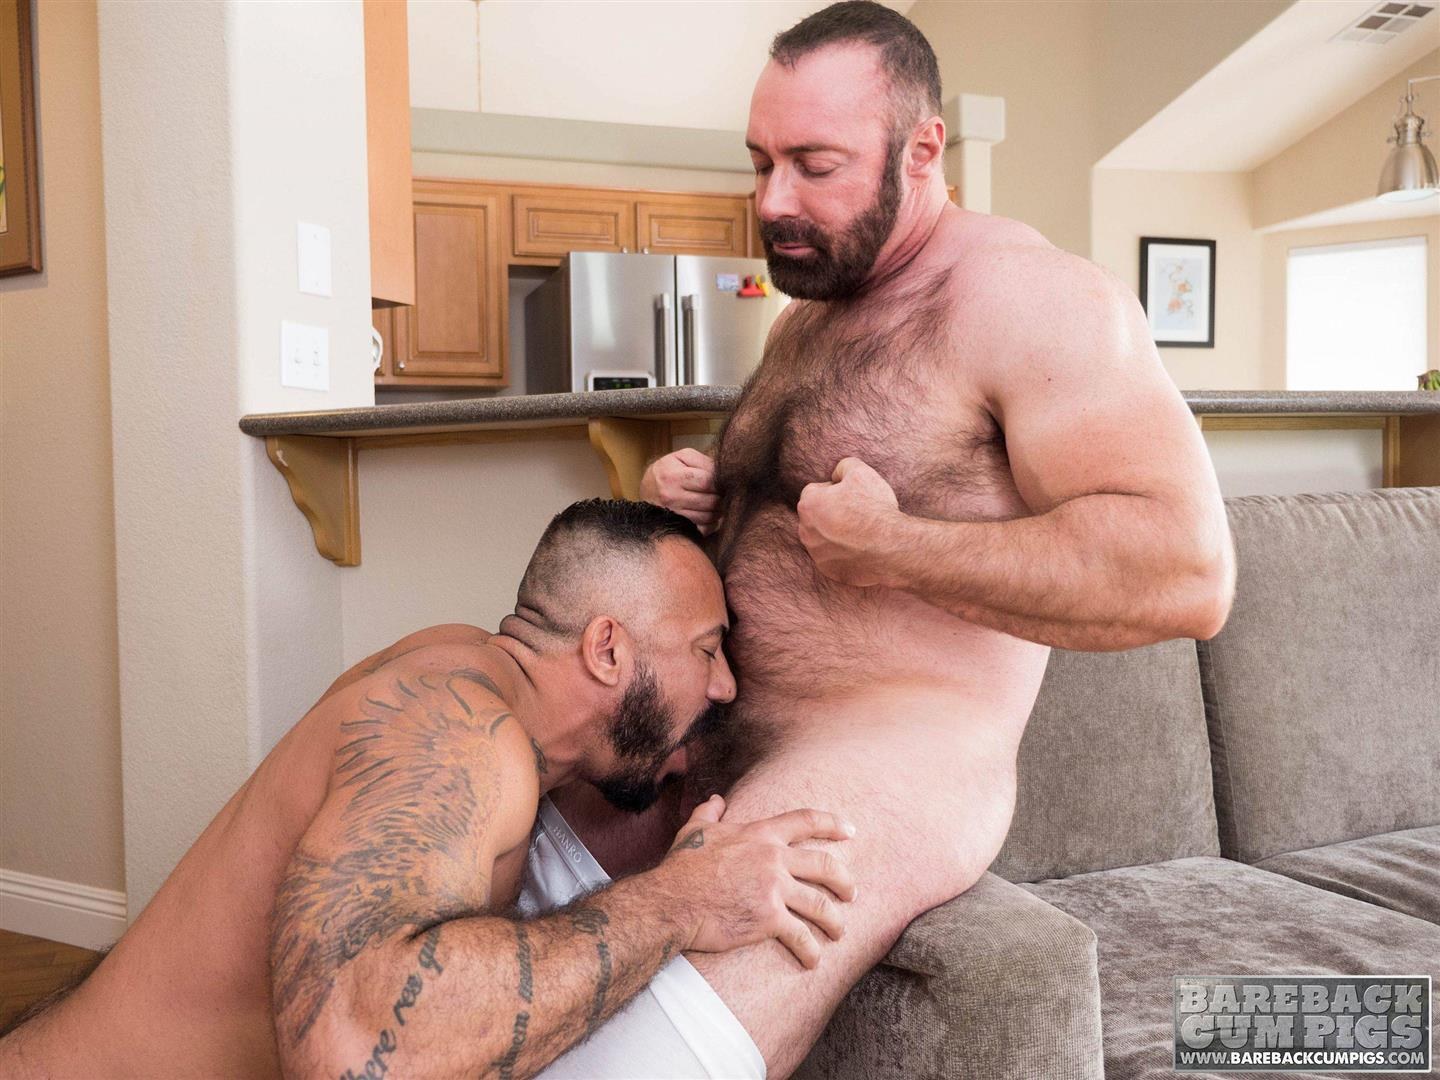 Aggressive gay hot daddy sex with sexy 4